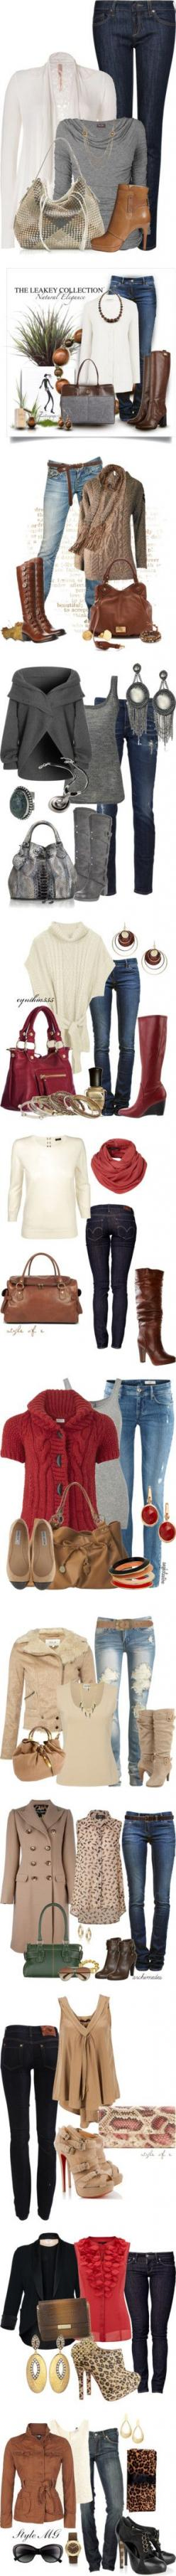 fall outfits...these make me wish I could wear jeans to work. :): Fashion Ideas, Skinny Jeans, Outfit Ideas, Fall Outfits, Winter Outfits, Fall Fashion, Jean Syndrome, Fabulous Fall, Fall Weather